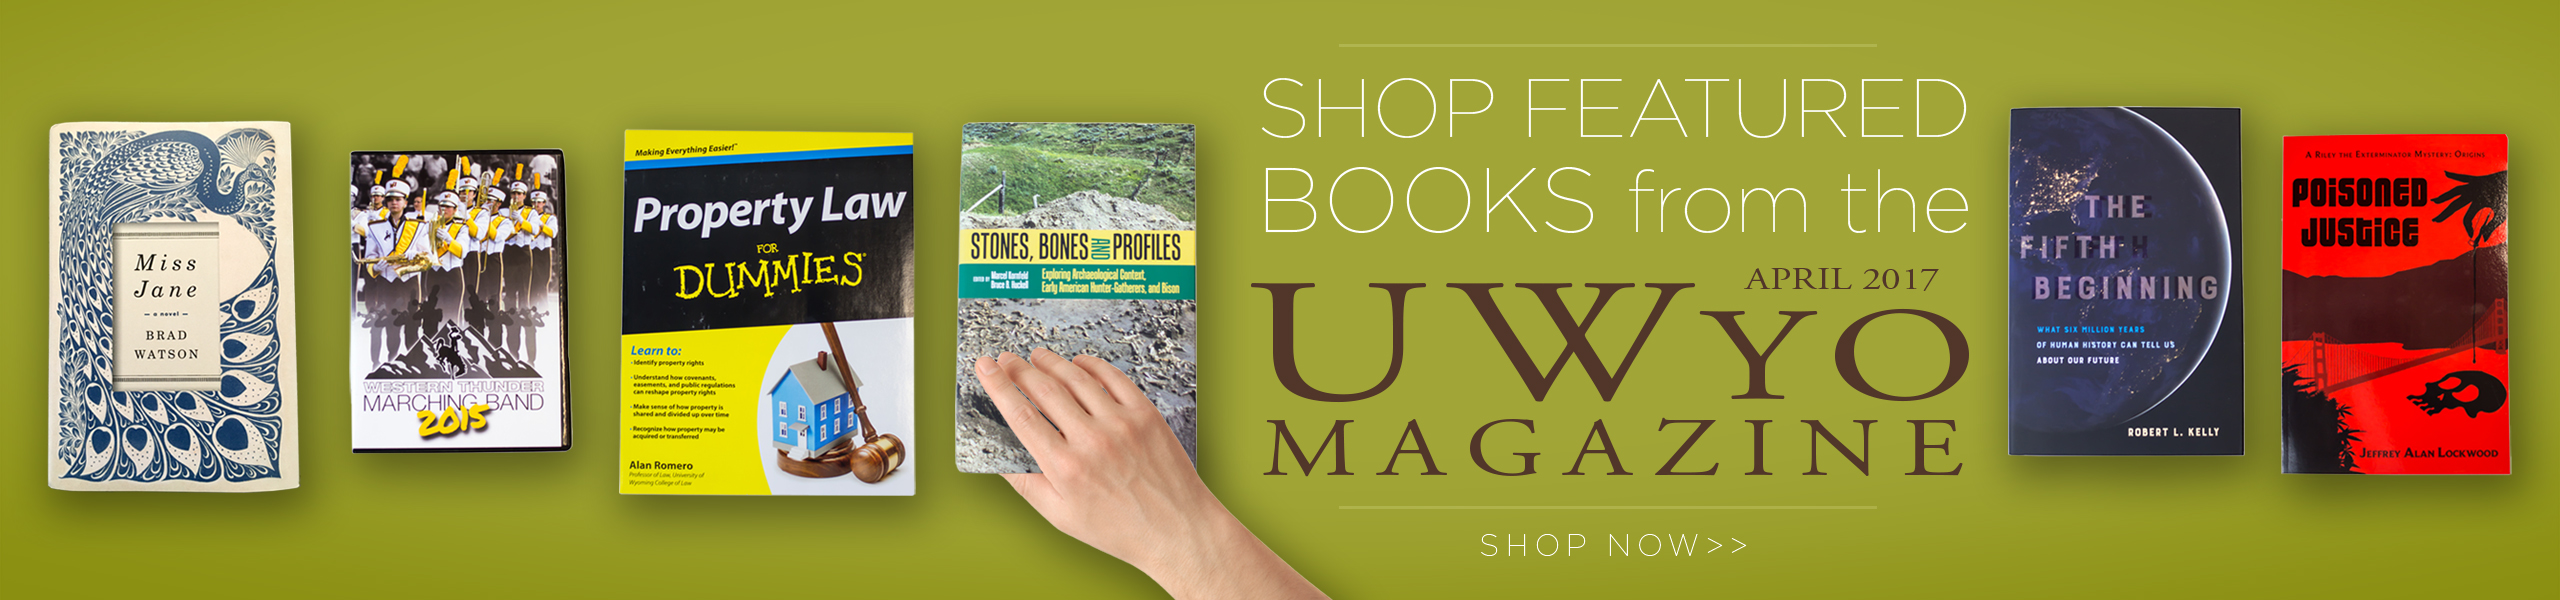 Shop our Featured Books now!